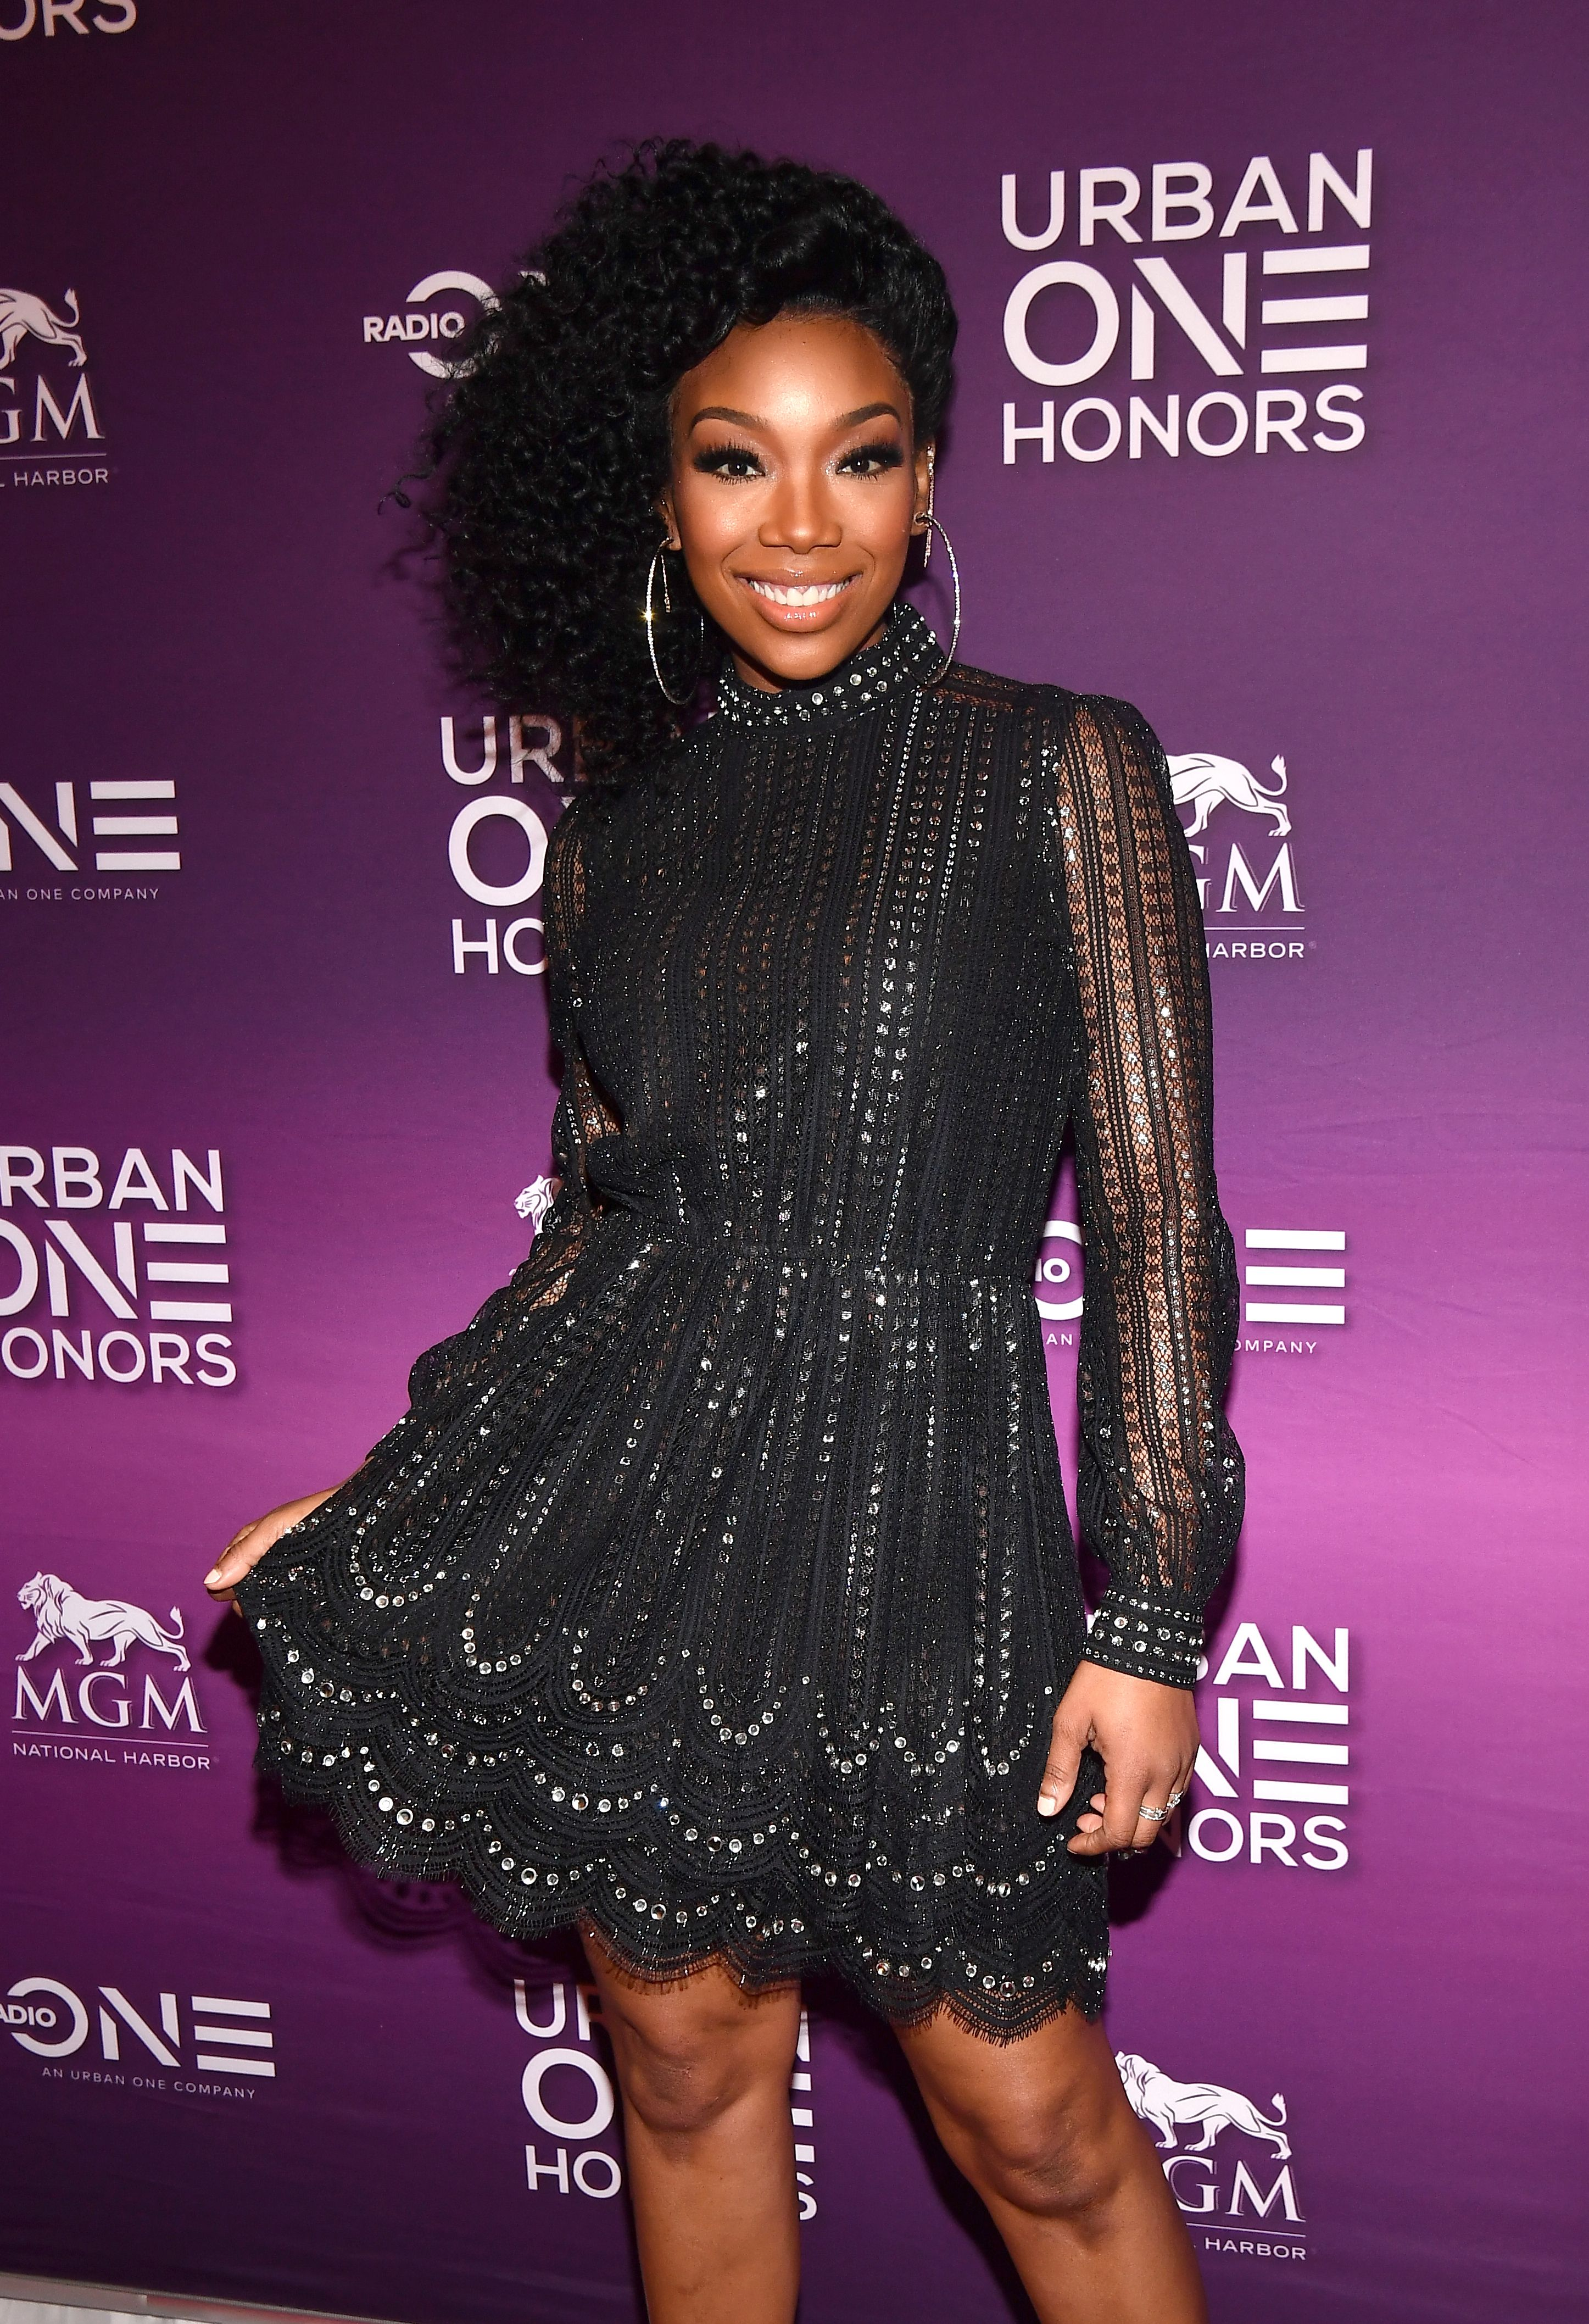 Brandy Norwood attends 2018 Urban One Honors at La Vie on December 9, 2018 in Washington, DC. | Source: Getty Images